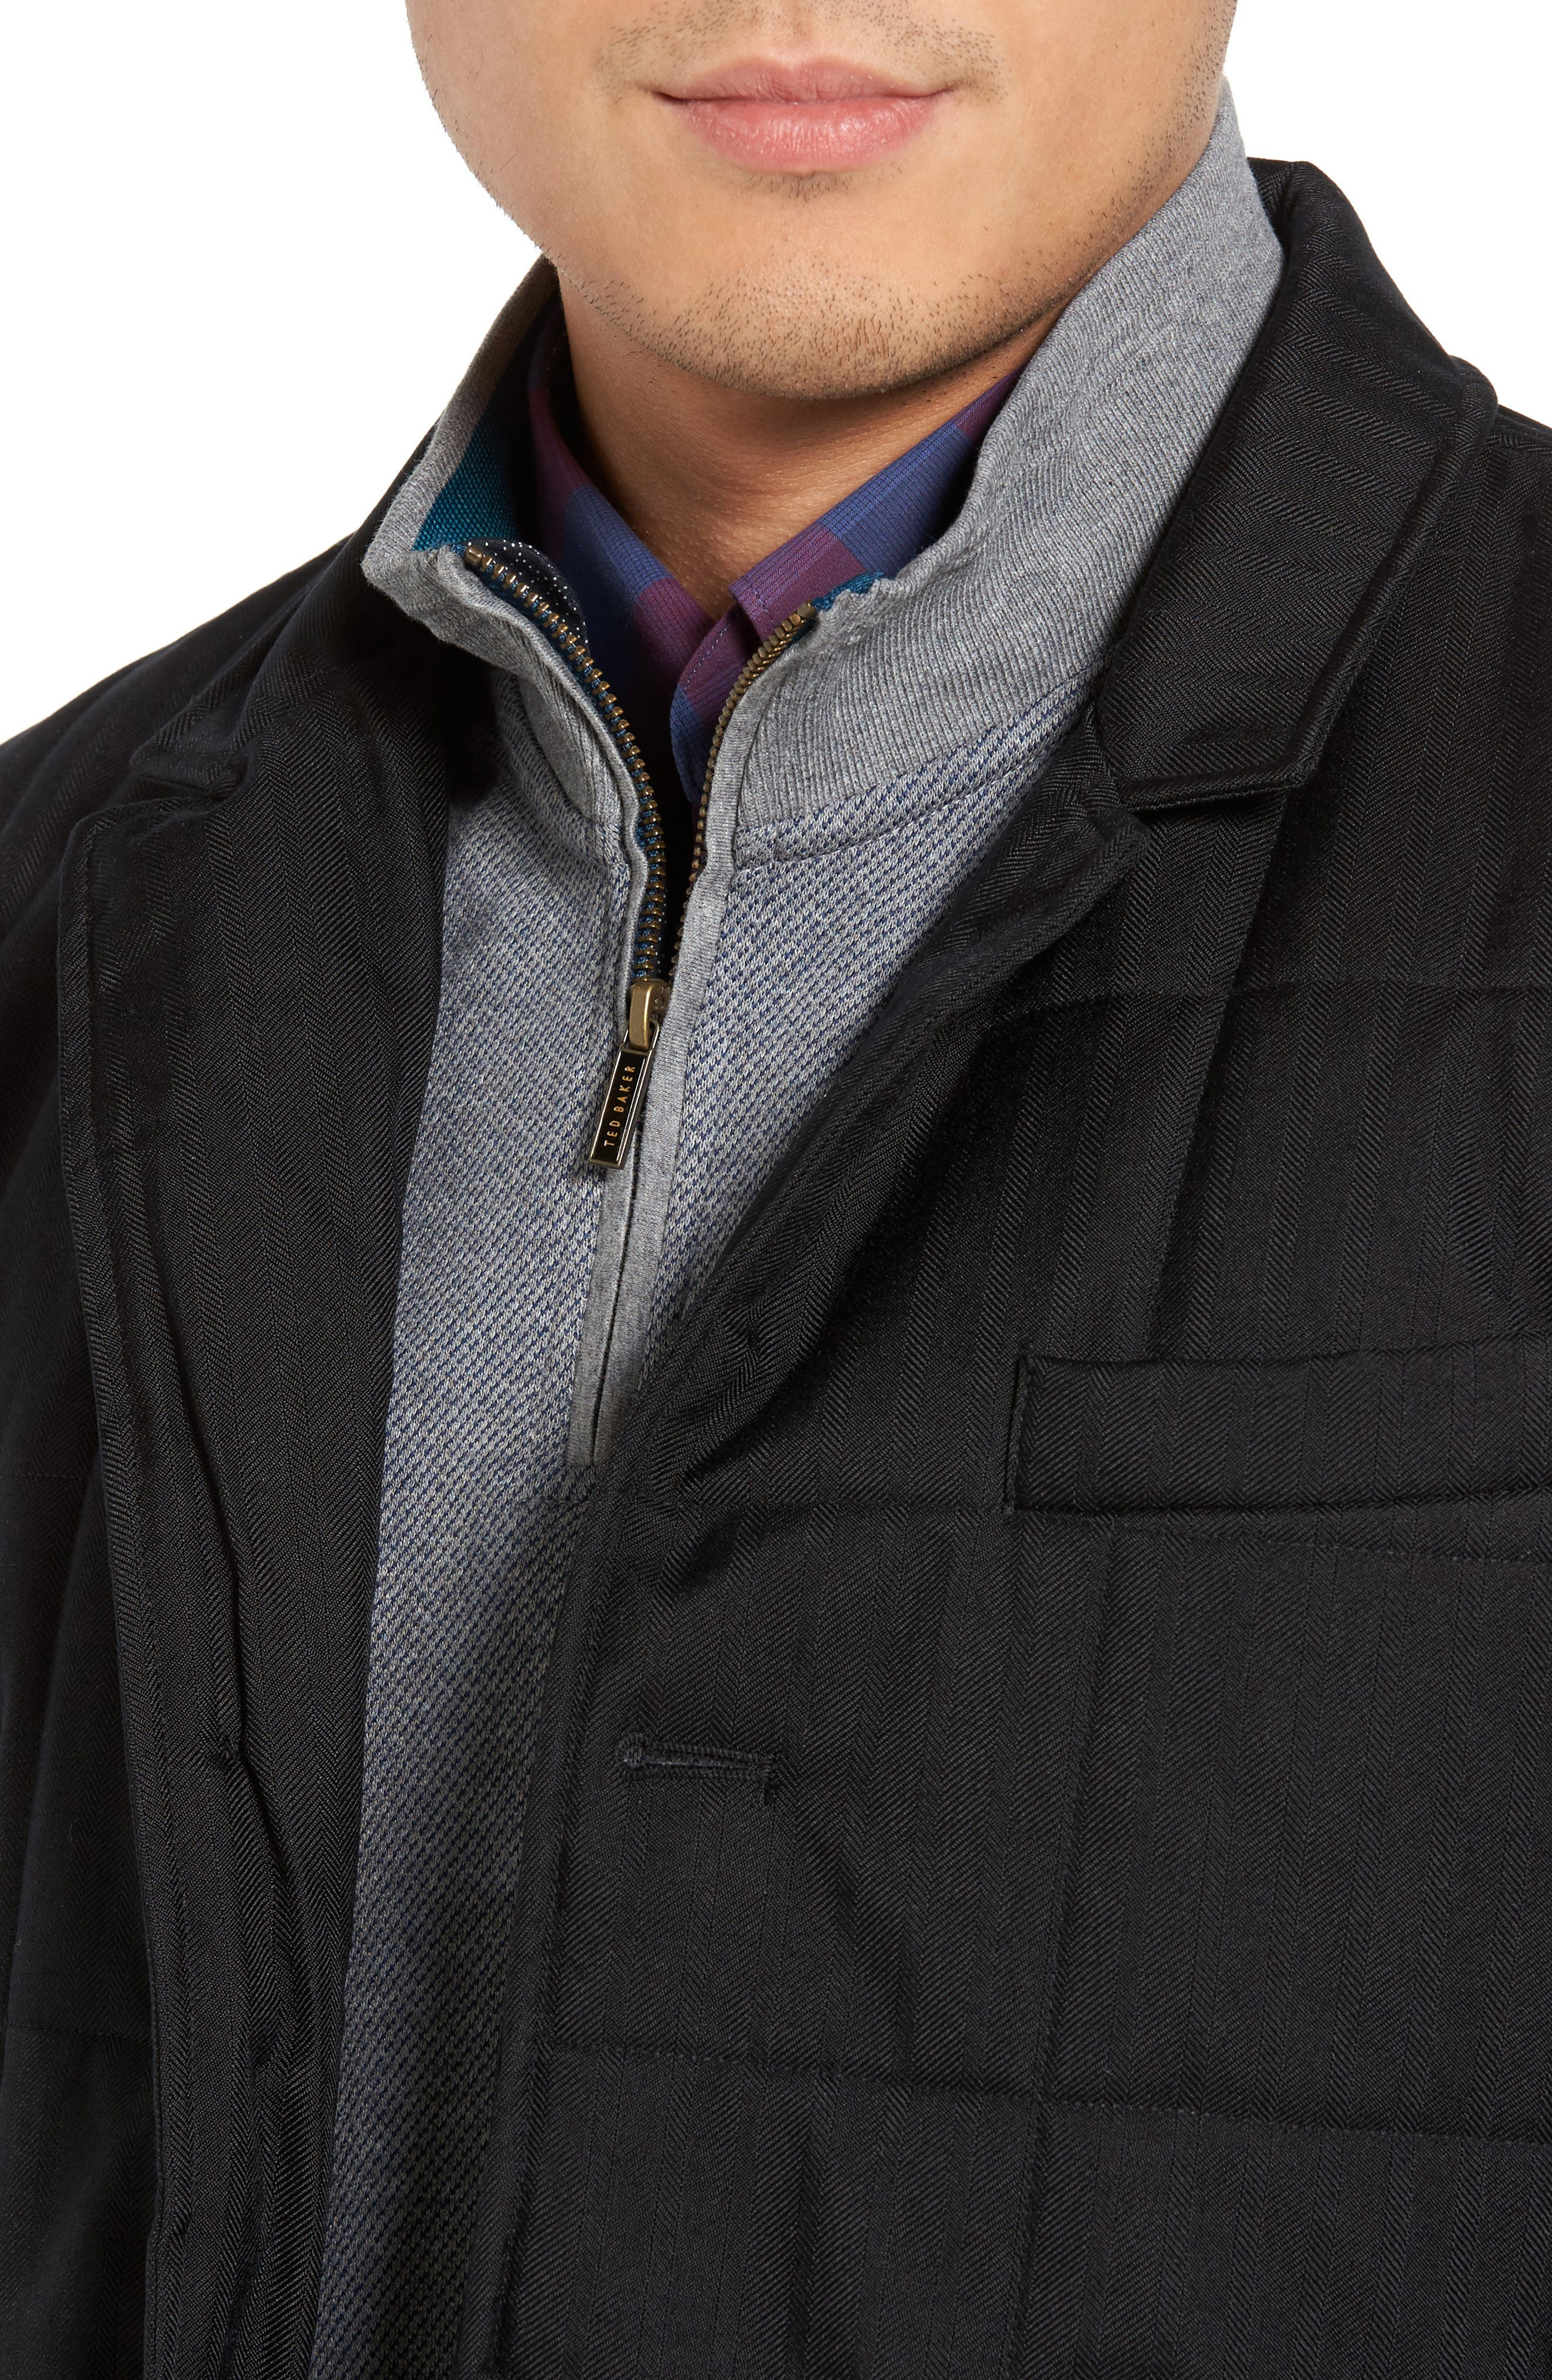 Jasper Trim Fit Quilted Jacket with Removable Bib,                             Alternate thumbnail 7, color,